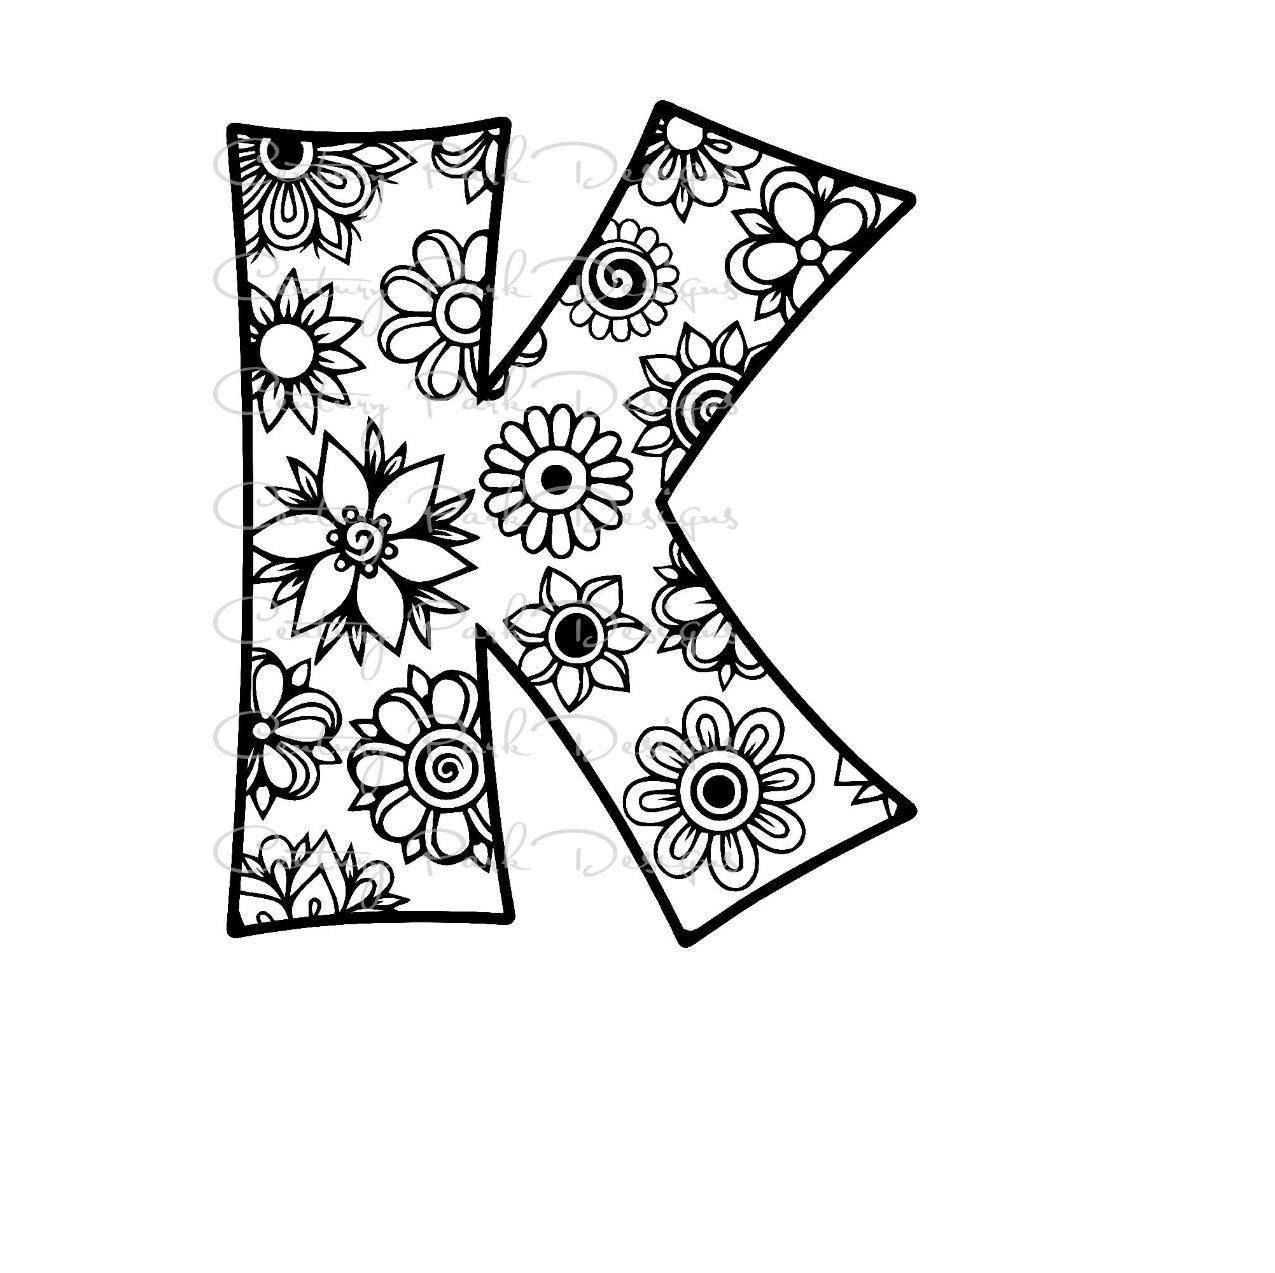 Letter K Drawing at GetDrawings.com | Free for personal use Letter K ...